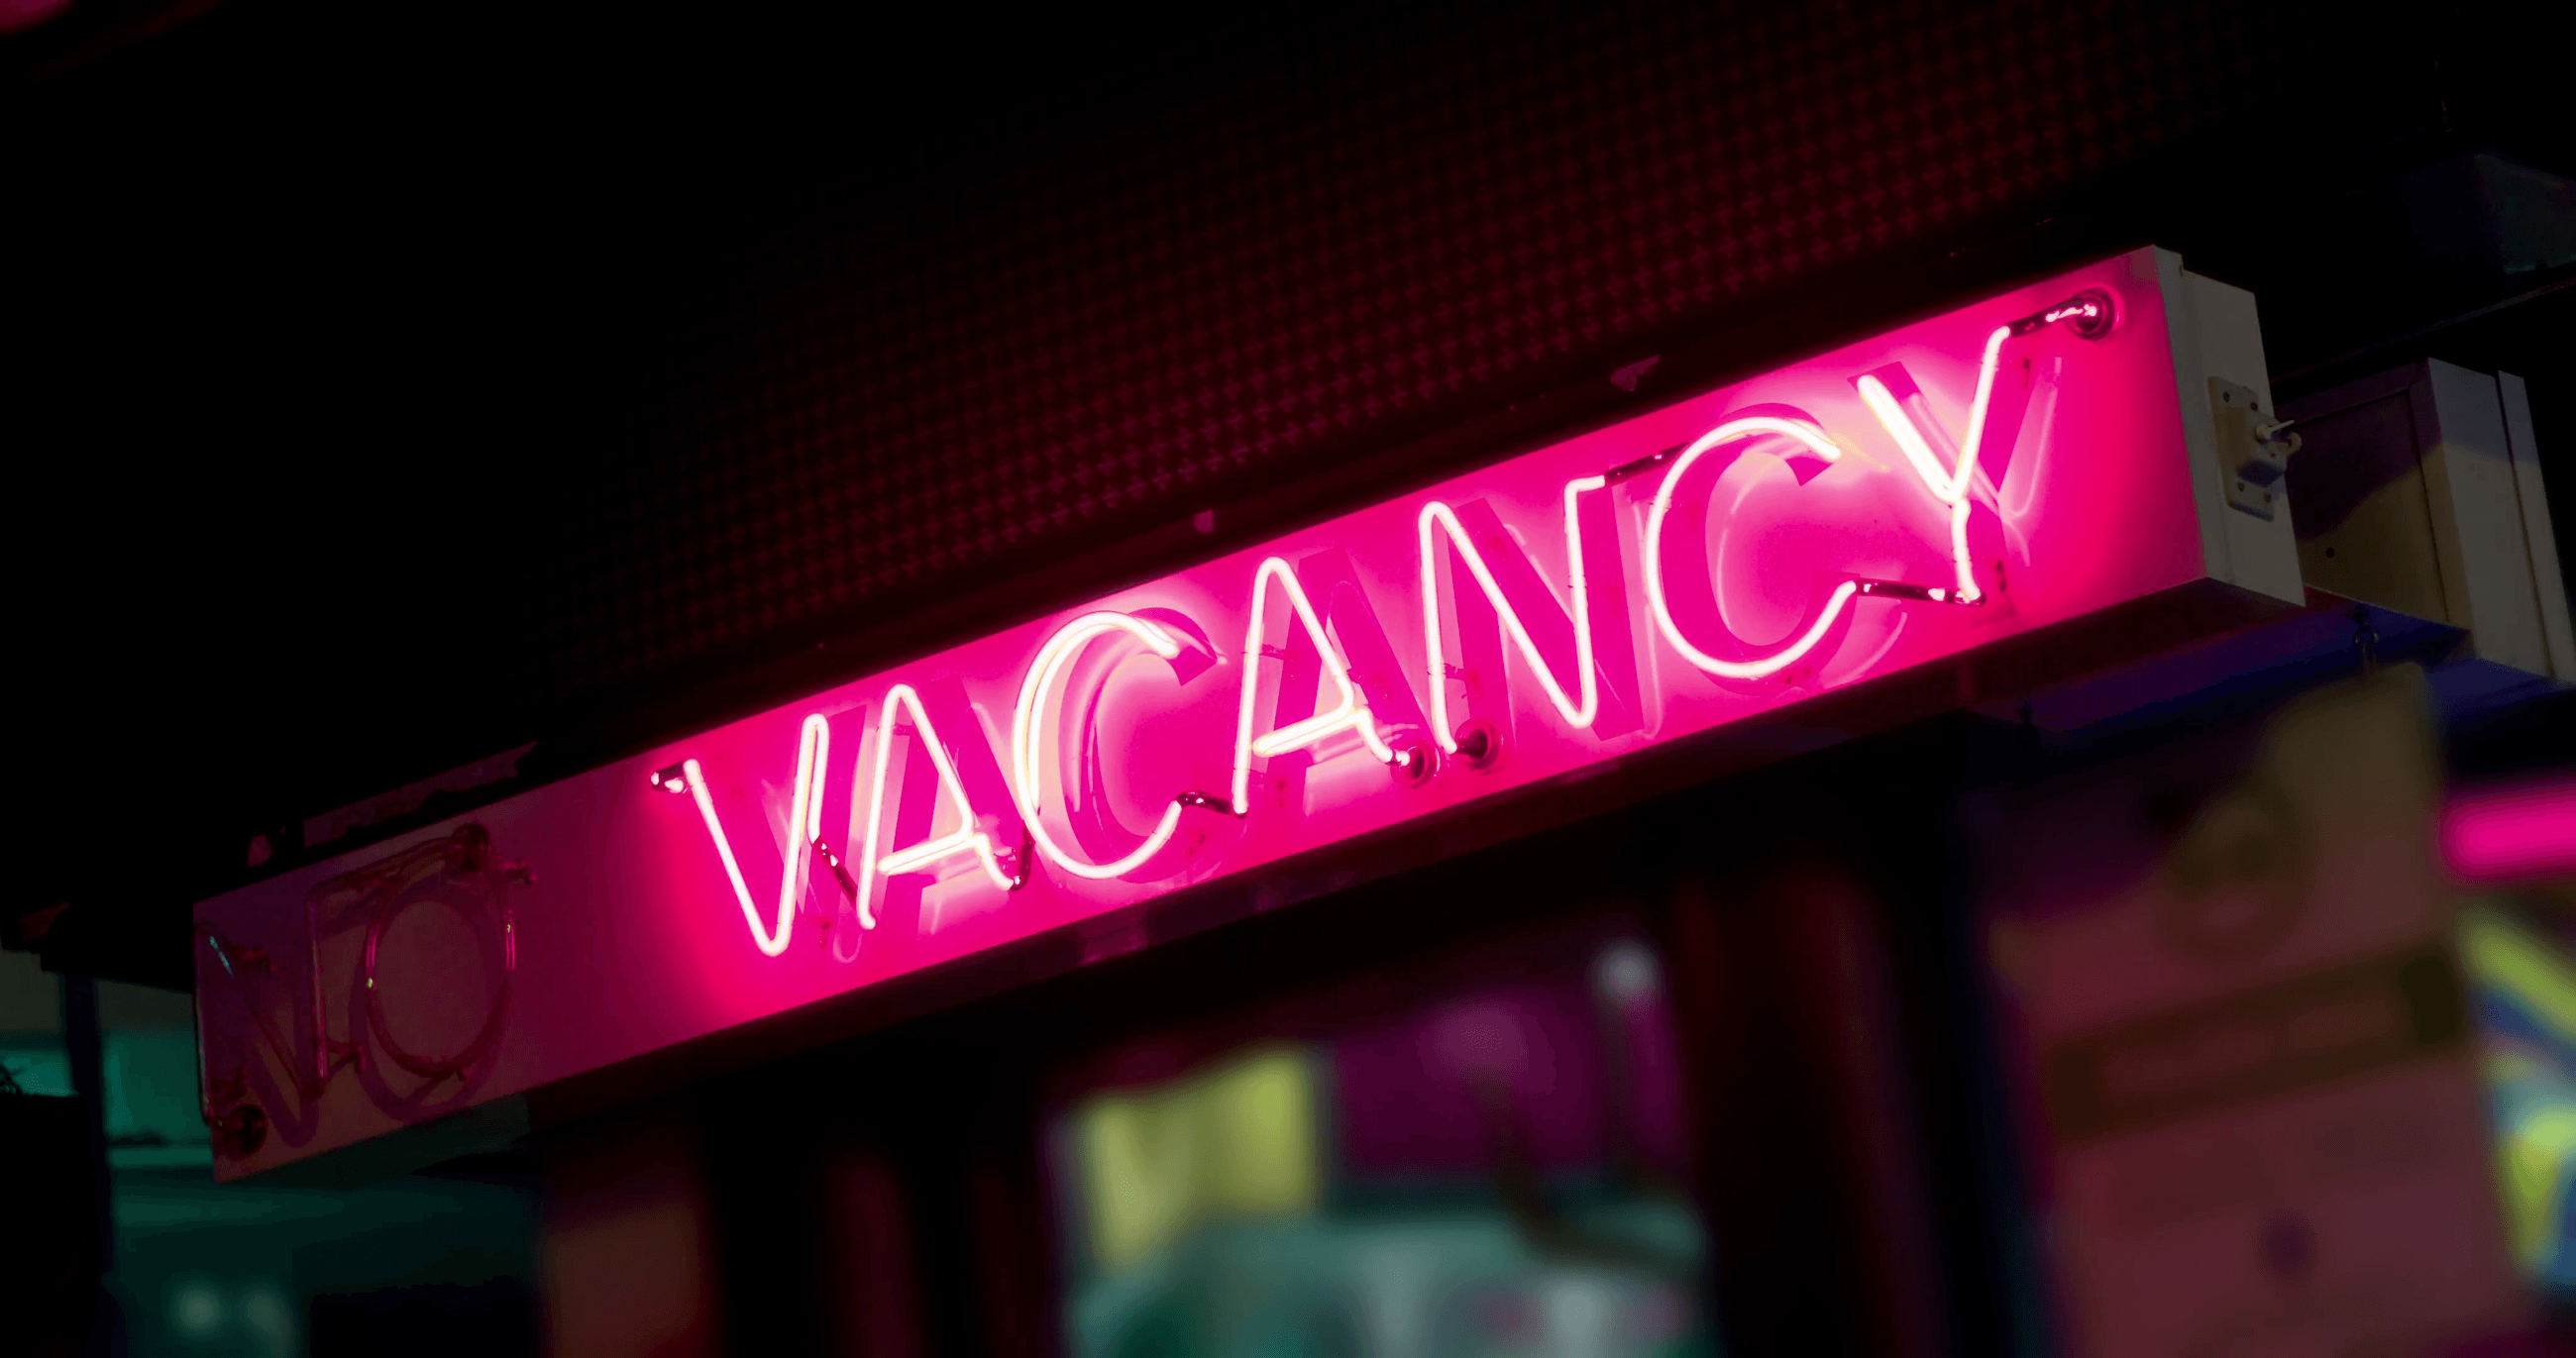 vacancy-sign-at-hotel-in-city-4k_xkwnsyqb__F0000